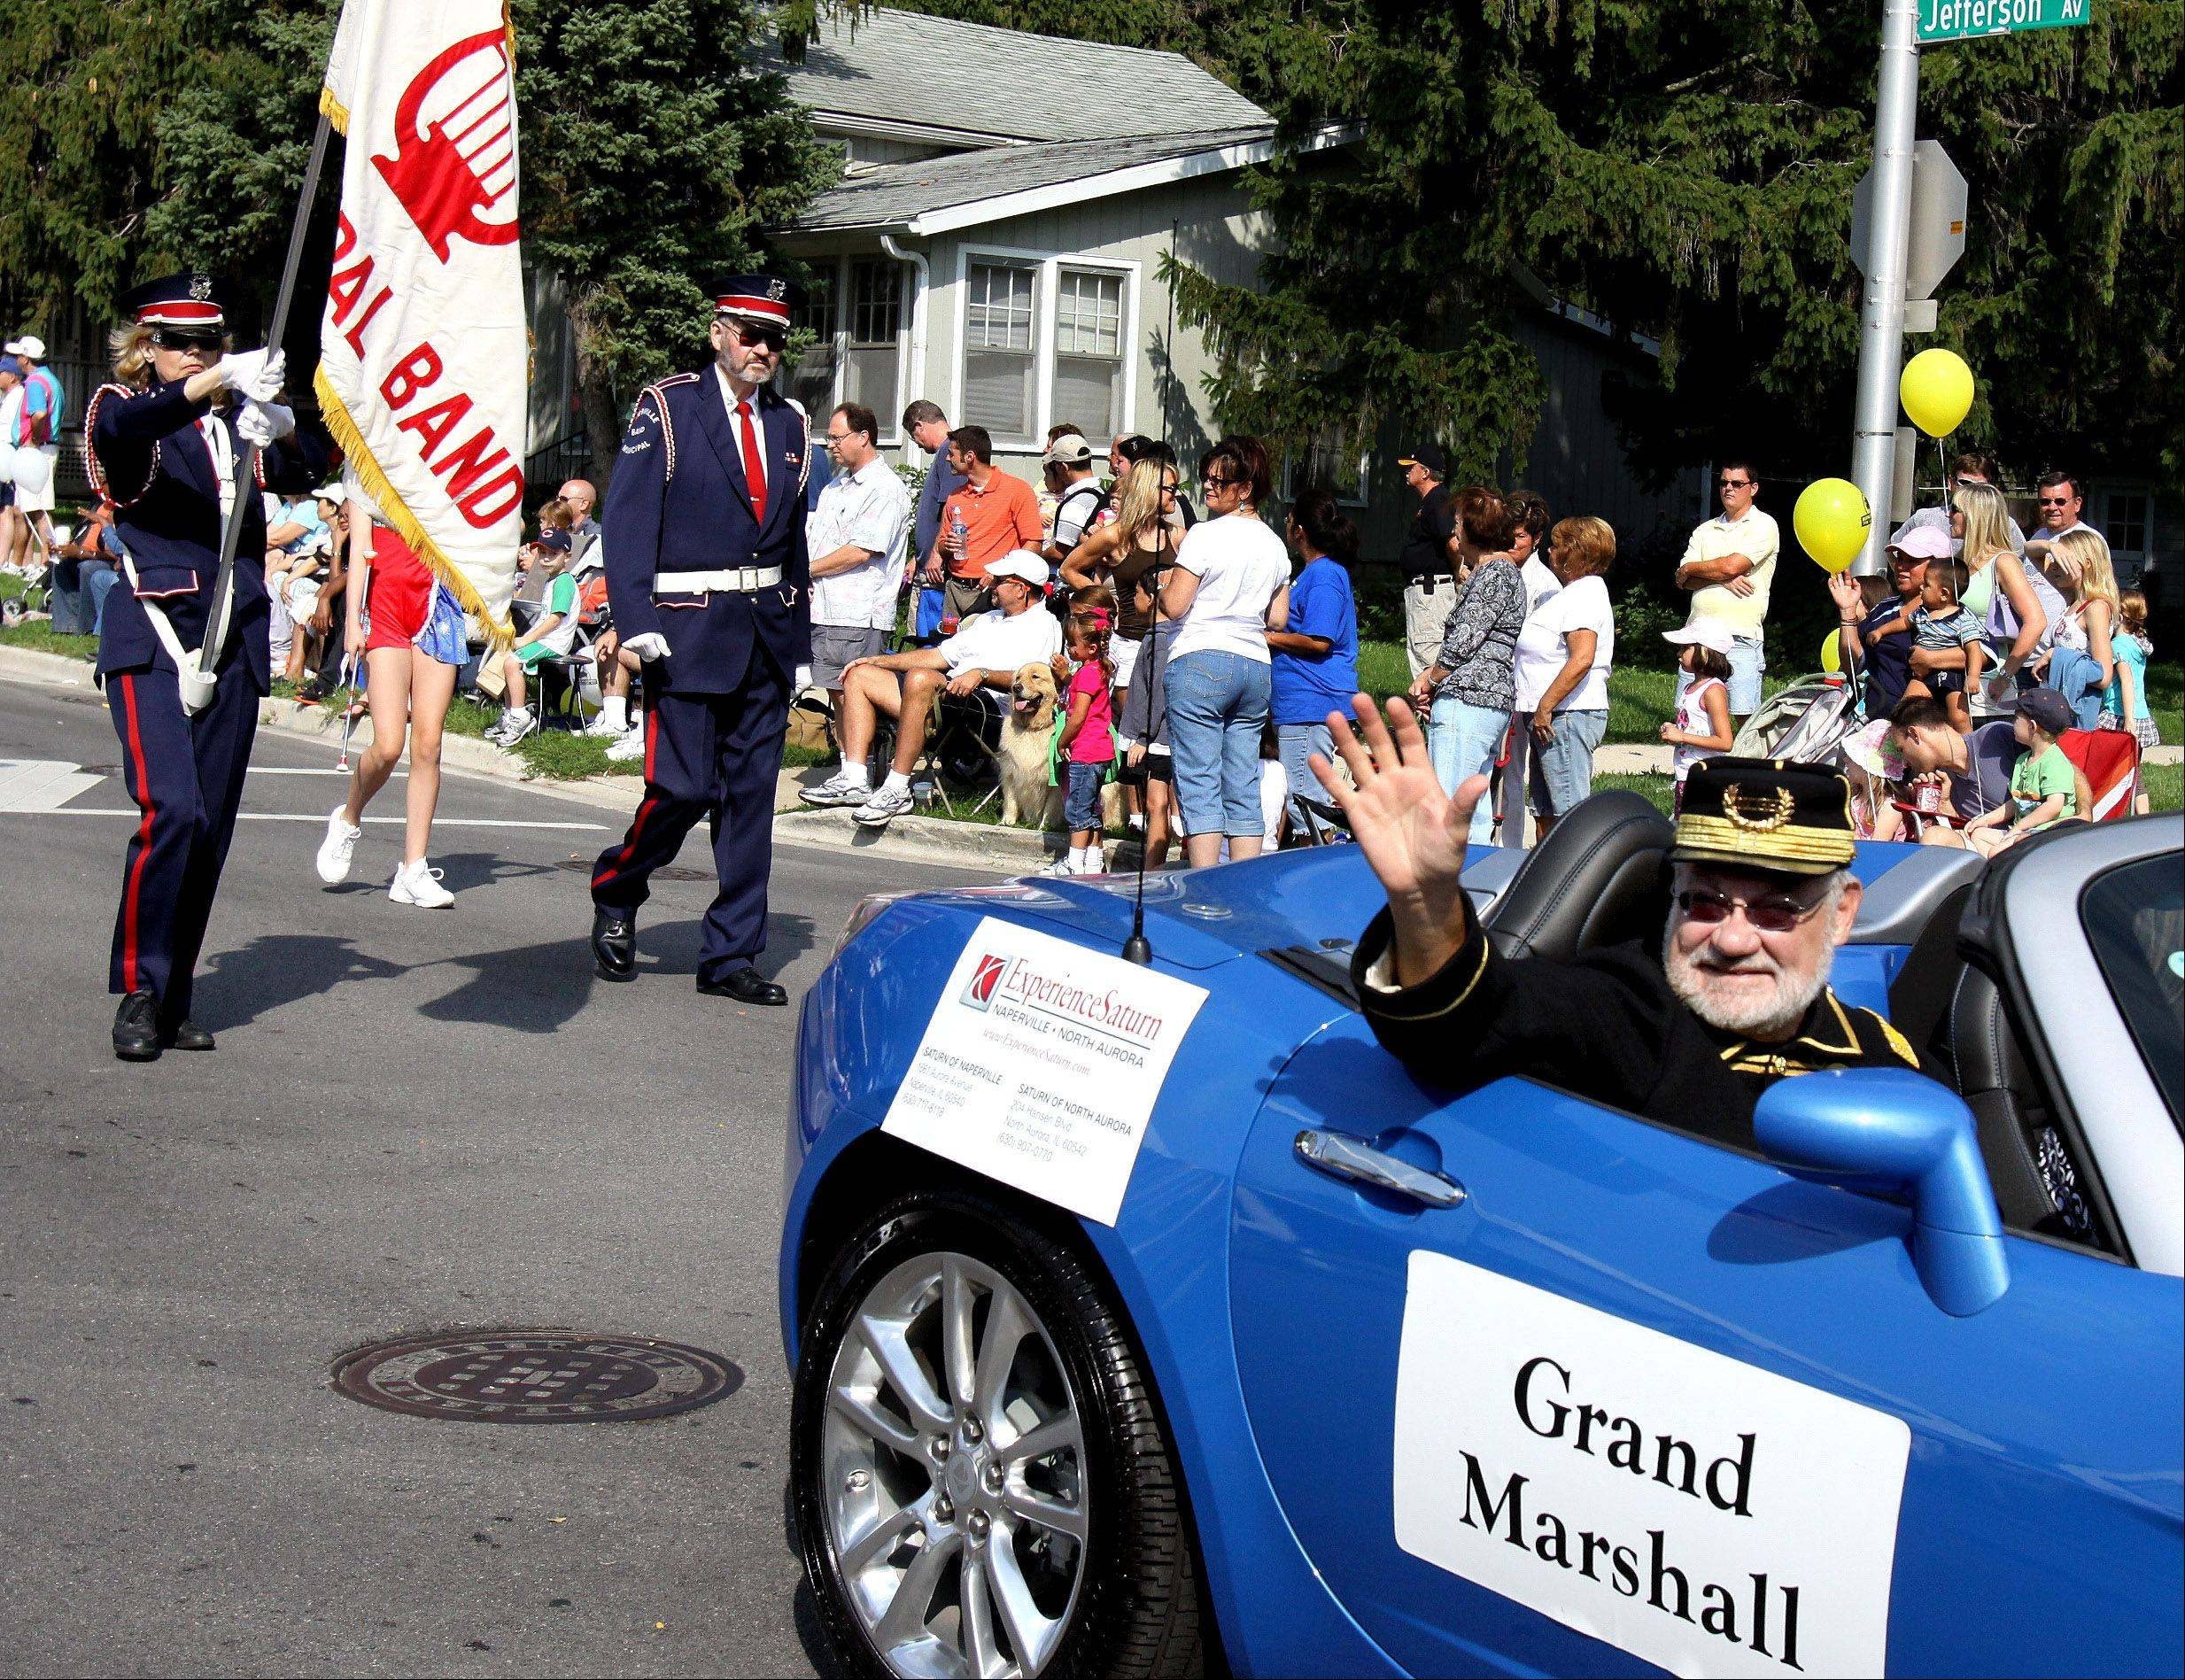 Ron Keller, director of the Naperville Municipal Band, serves as grand marshal in a past Labor Day Parade. This year�s parade, at 10 a.m. Monday, Sept. 2, will honor the Naperville Area Chamber of Commerce as grand marshal during the chamber�s 100th anniversary year.